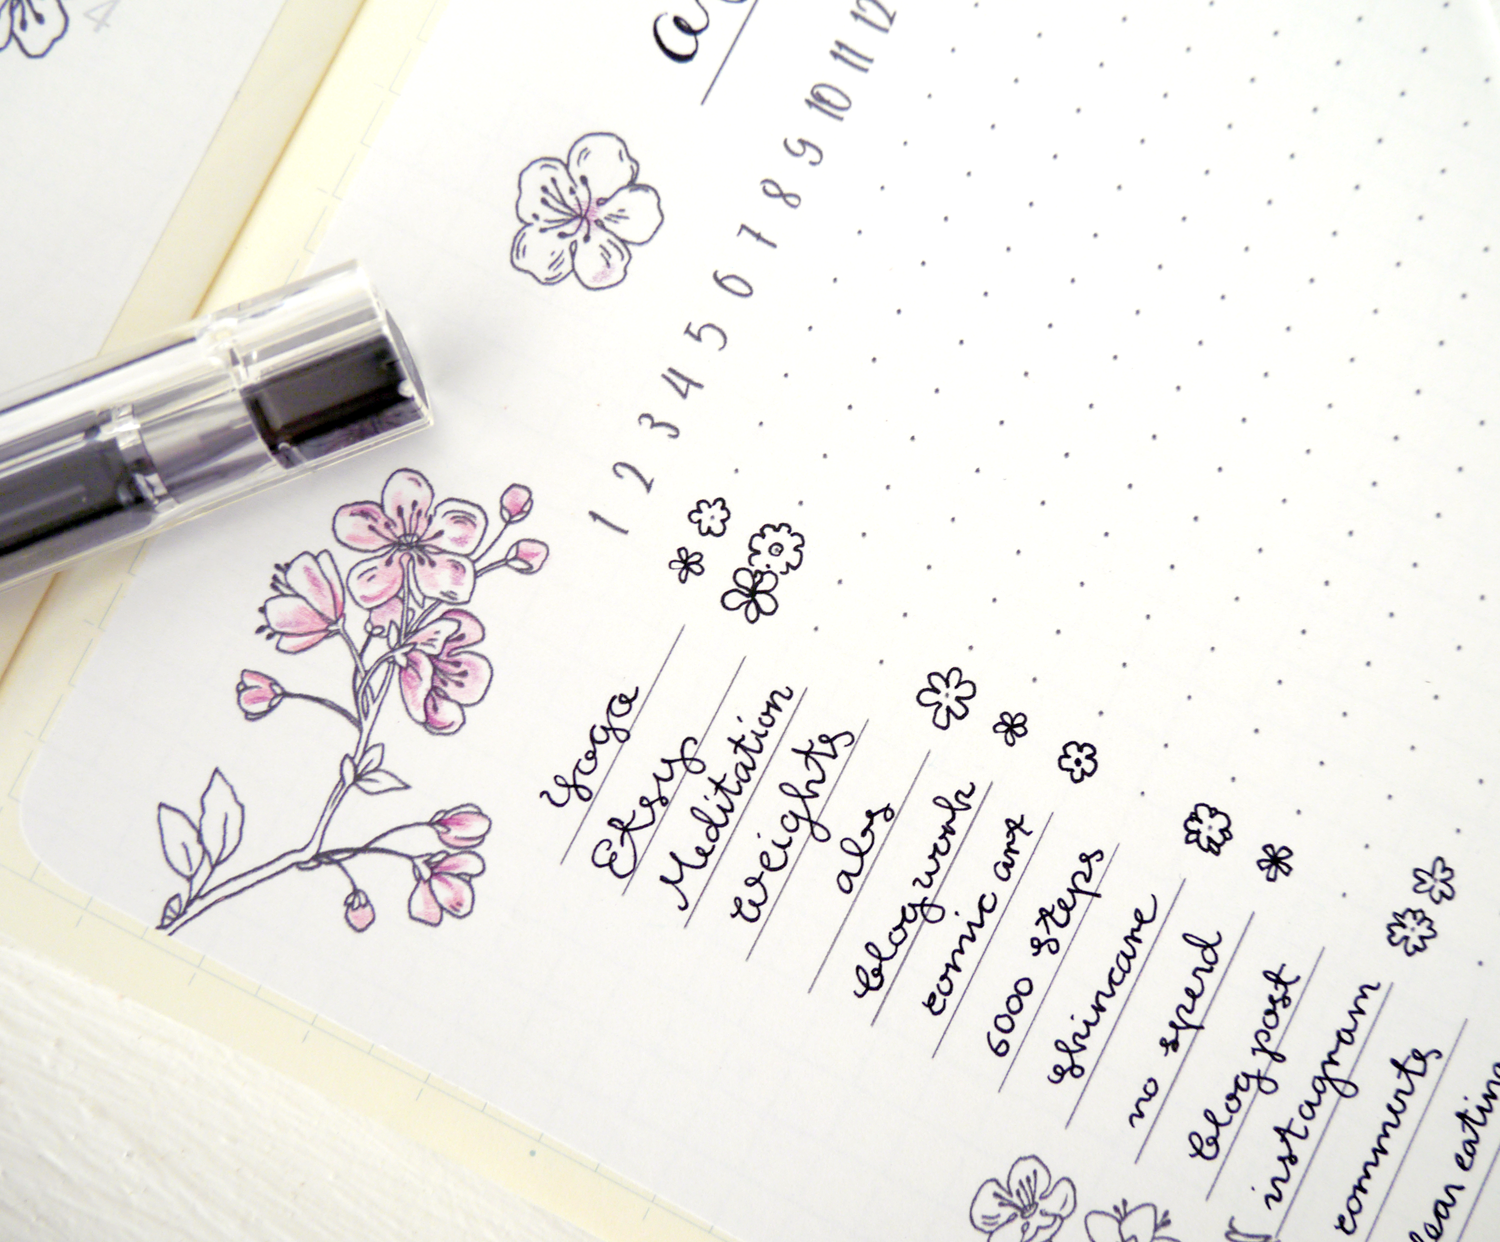 """Bullet journals are different for everyone. That flexibility is the key to why they're so popular!  My own preference:  Functional, simple daily and weekly layouts  combined with  elaborate monthly collections . That way, I save time on my daily planning but can still have fun.  With that in mind, I change up those monthly collection pages to fit with a  """"theme""""  or  """"aesthetic""""  - mostly inspired by the seasons or any of my current obsessions.  April here in Korea means cherry blossom season! For a couple of weeks, there are cherry trees in full bloom and events everywhere.  Of course, I couldn't NOT center my  April bullet journal spreads  around cherry blossoms.  Here's the result: A cute but simple collection of pages and ideas.  I hope you enjoy the printables I made to go along with my own BuJo month. Read on to grab the free coloring page, too~"""